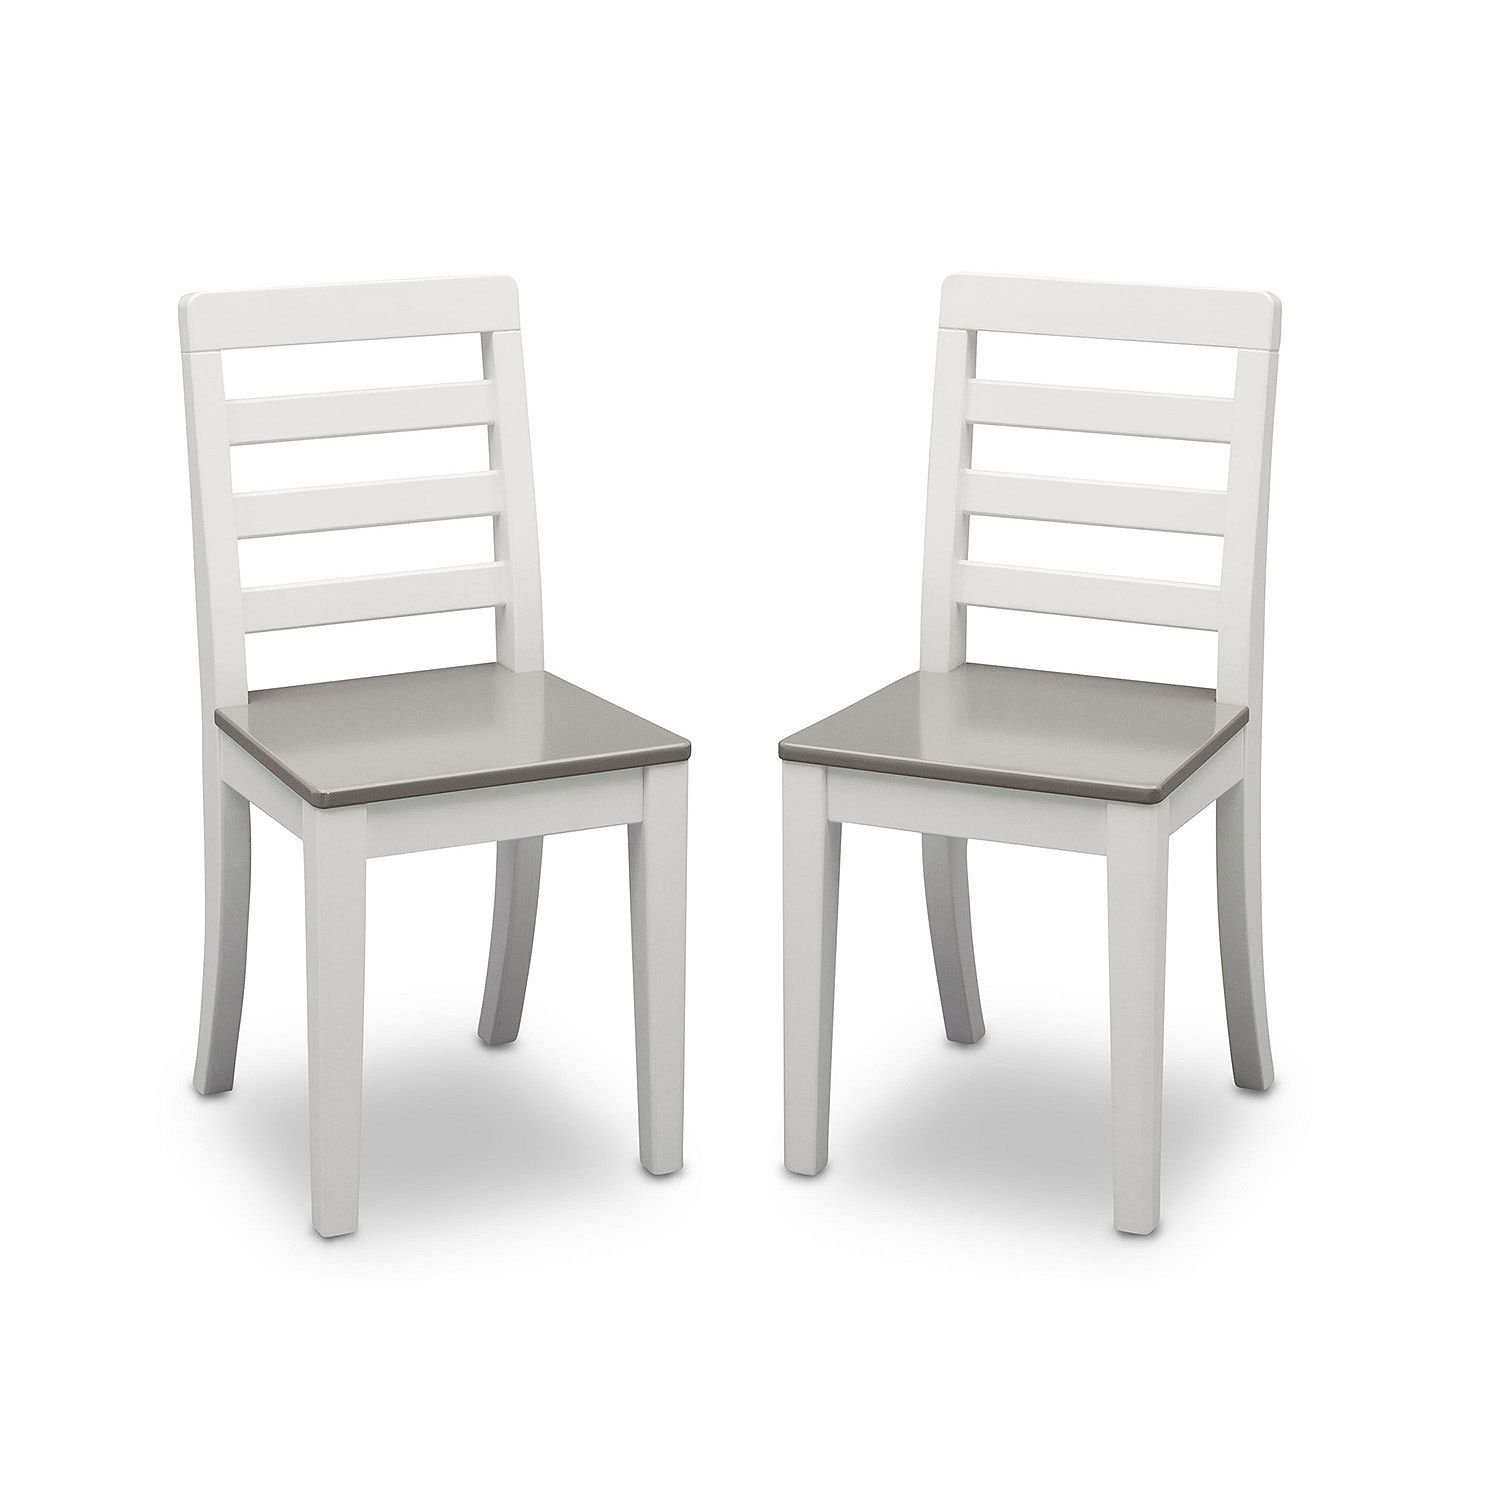 Delta Children Table and Chairs, 3-Piece Set (White and Grey)